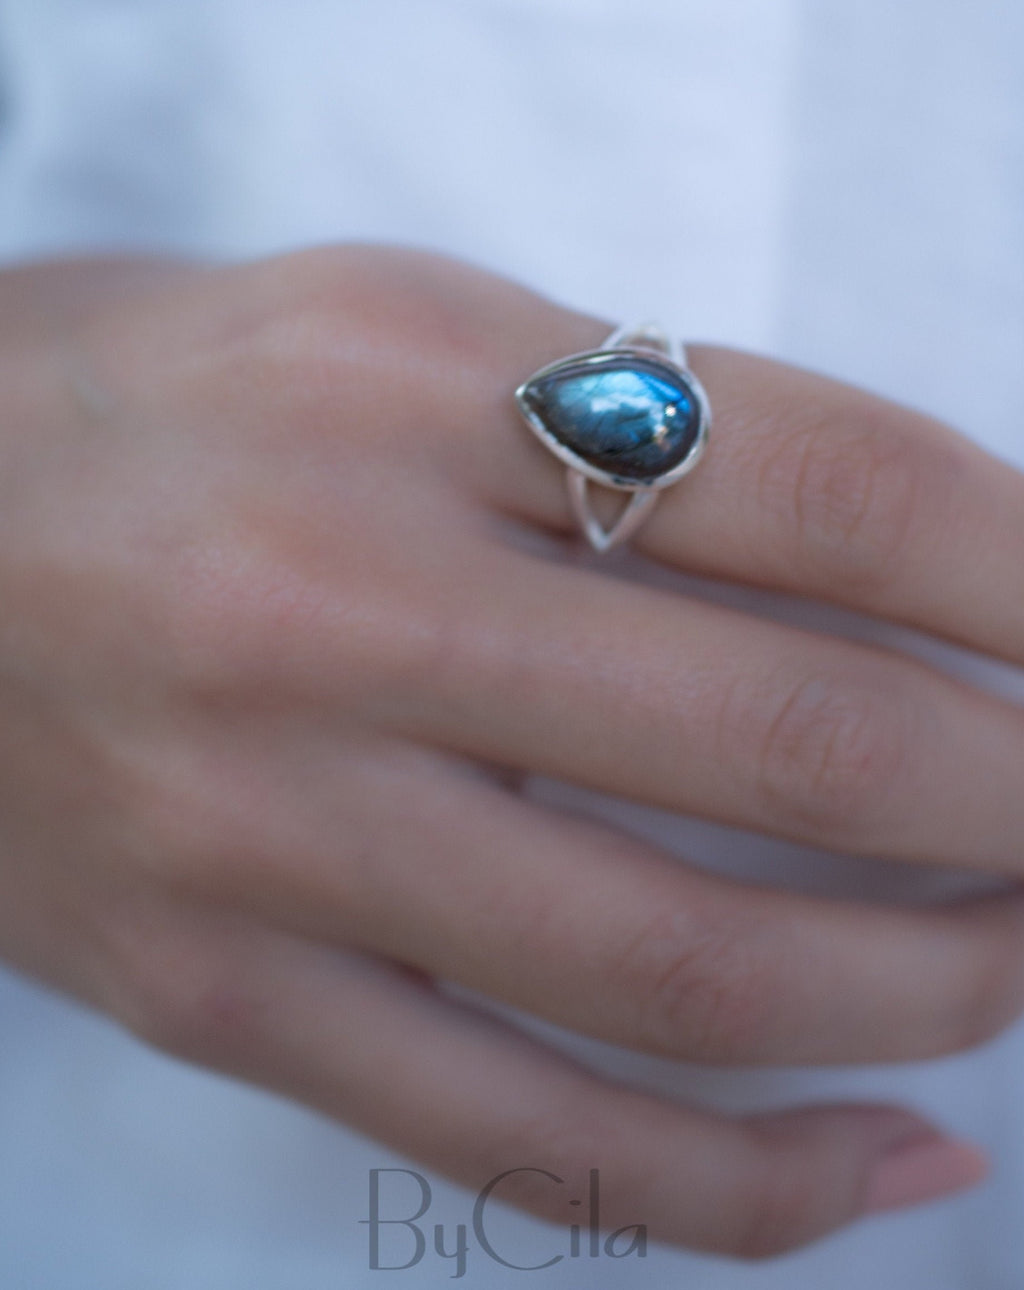 Tear Drop Labradorite Ring * Sterling Silver 925 * Handmade * Gemstone * Jewelry *Boho *Bohemian *Statement *Hippie * Gift for her BJR190